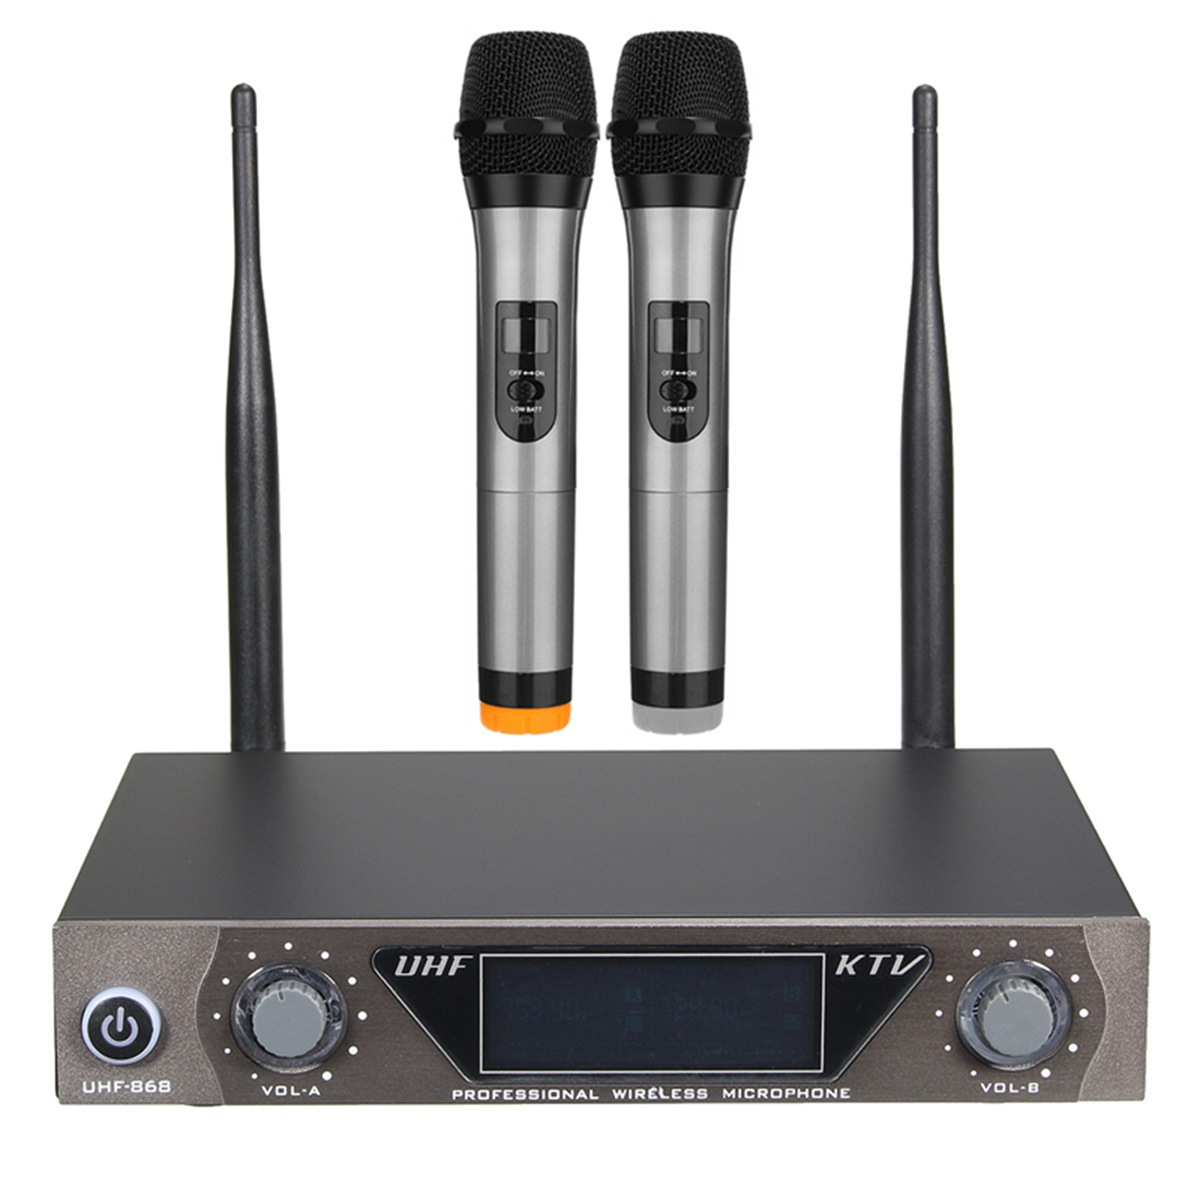 LEORY UHF Karaoke Wireless Microphone System With 2 Handheld Mic Dual Channel UHF Transmitter Microphone Systerm For Karaoke zmvp p24 m58 uhf professional wireless microphone system with m58 handheld transmitter mic for stage live vocals karaoke speech